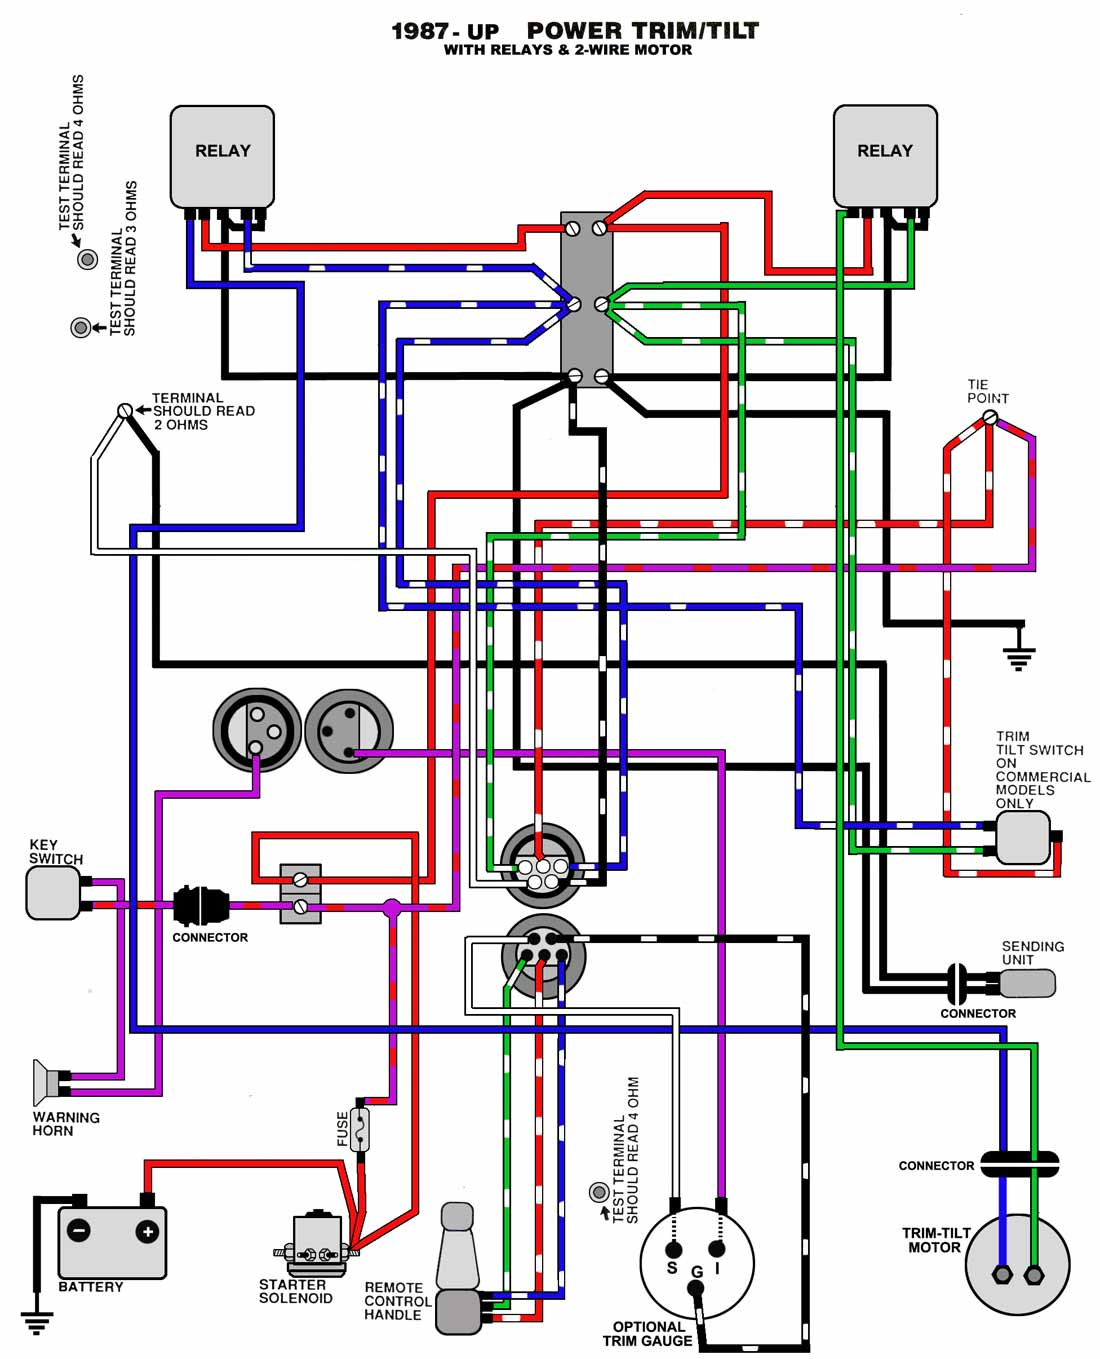 [DIAGRAM_0HG]  ML_5496] Tilt And Trim Switch Wiring Diagram Schematic Wiring | 115 Hp Mercury Outboard Ignition Wiring Diagram |  | Puti Pical Hemt Antus Heli Iness Ructi Caba Bepta Drosi Wigeg  Mohammedshrine Librar Wiring 101